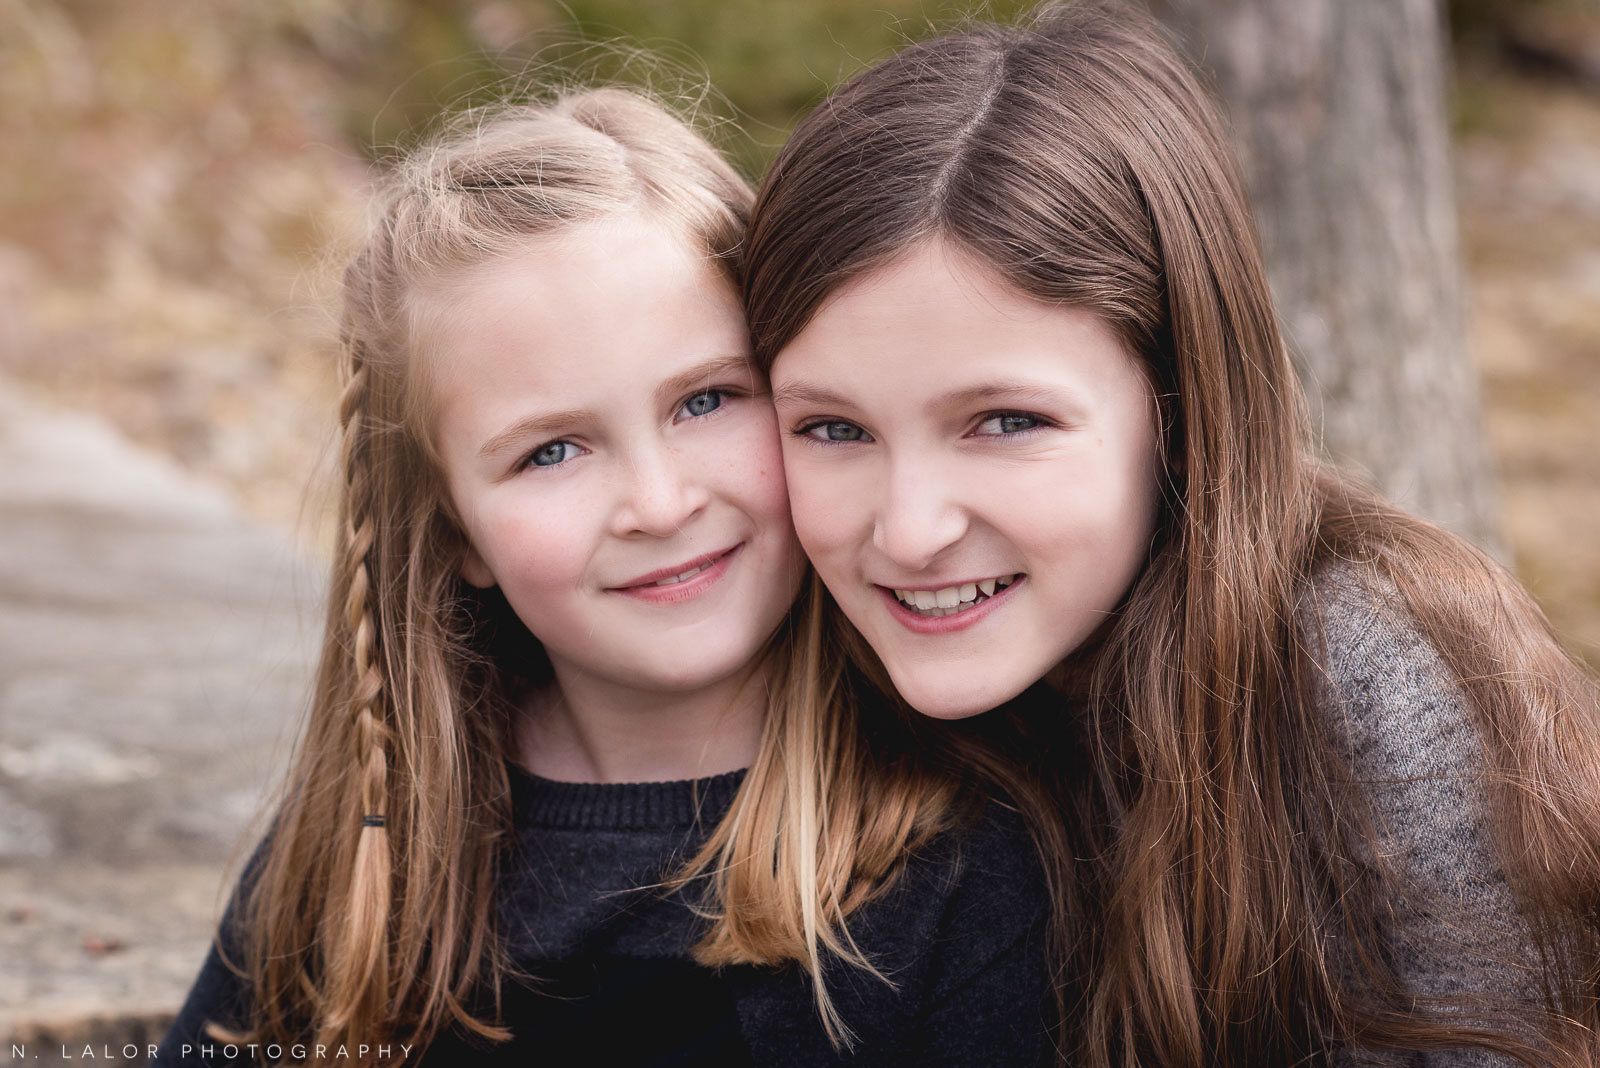 The perfect sister portrait. Editorial-style family session by N. Lalor Photography in Darien, Connecticut.